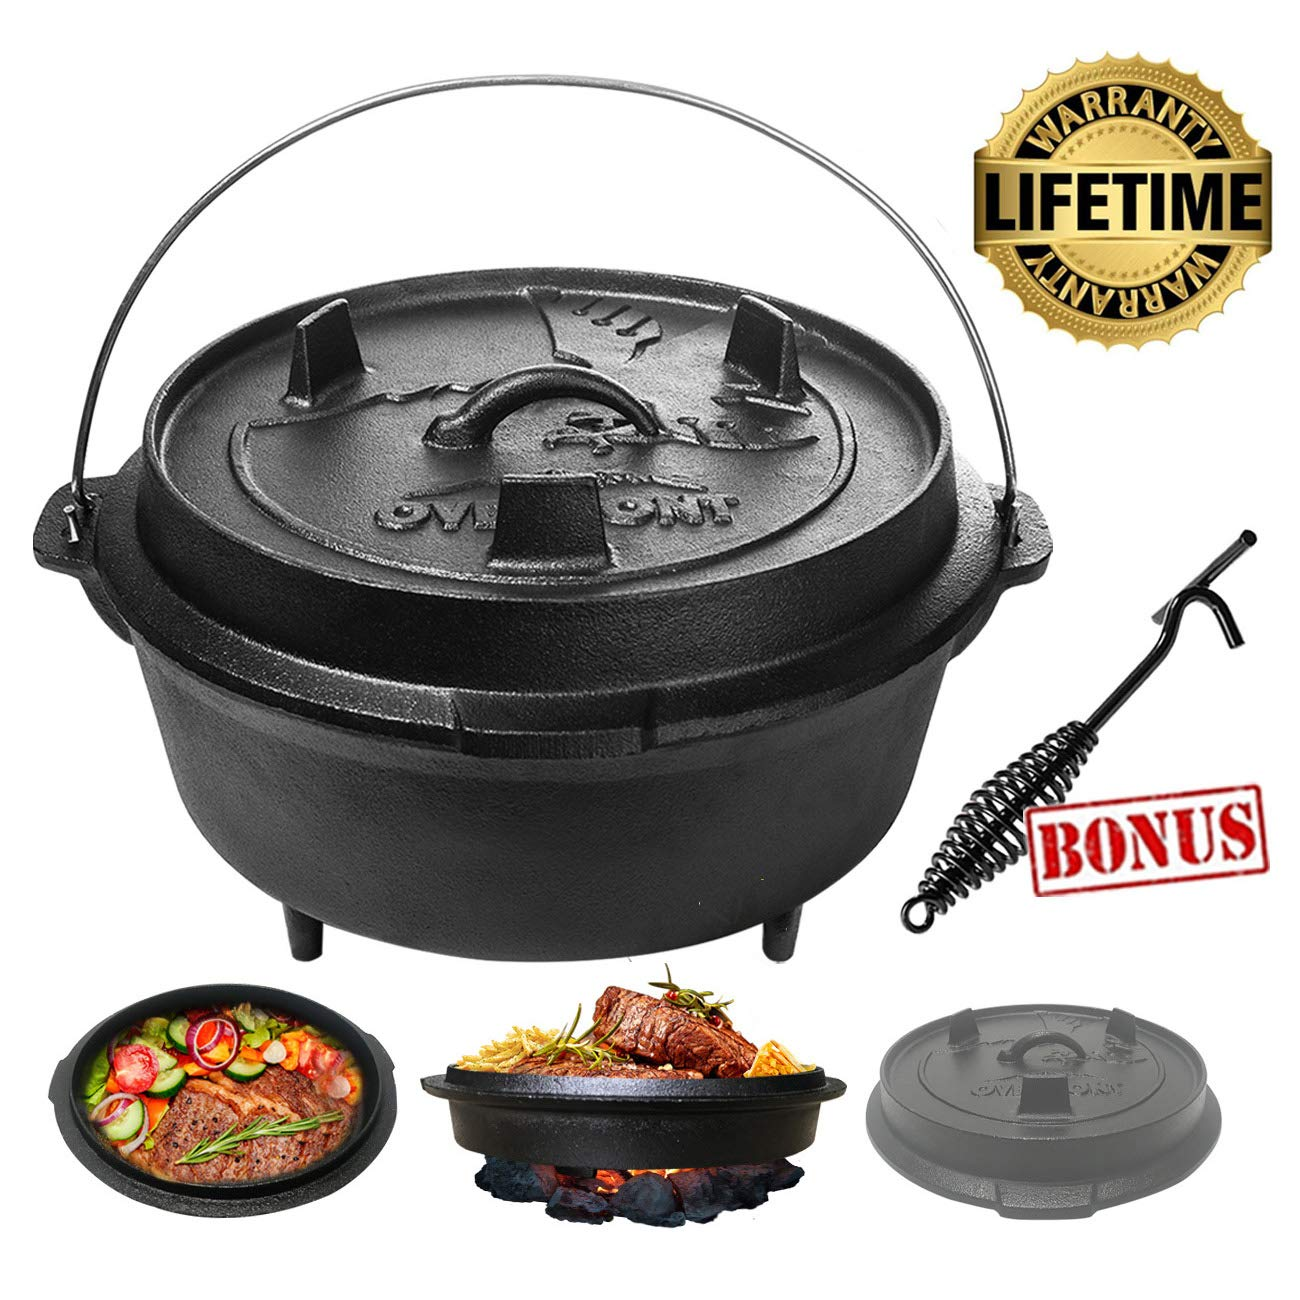 Overmont 9 Quart All-Round Dutch Oven【Dual Function : Lid Skillet】【with Lid Lifter】【Pre Seasoned】 Cast Iron Dutch Oven for Camping Cooking BBQ Baking by Overmont (Image #1)